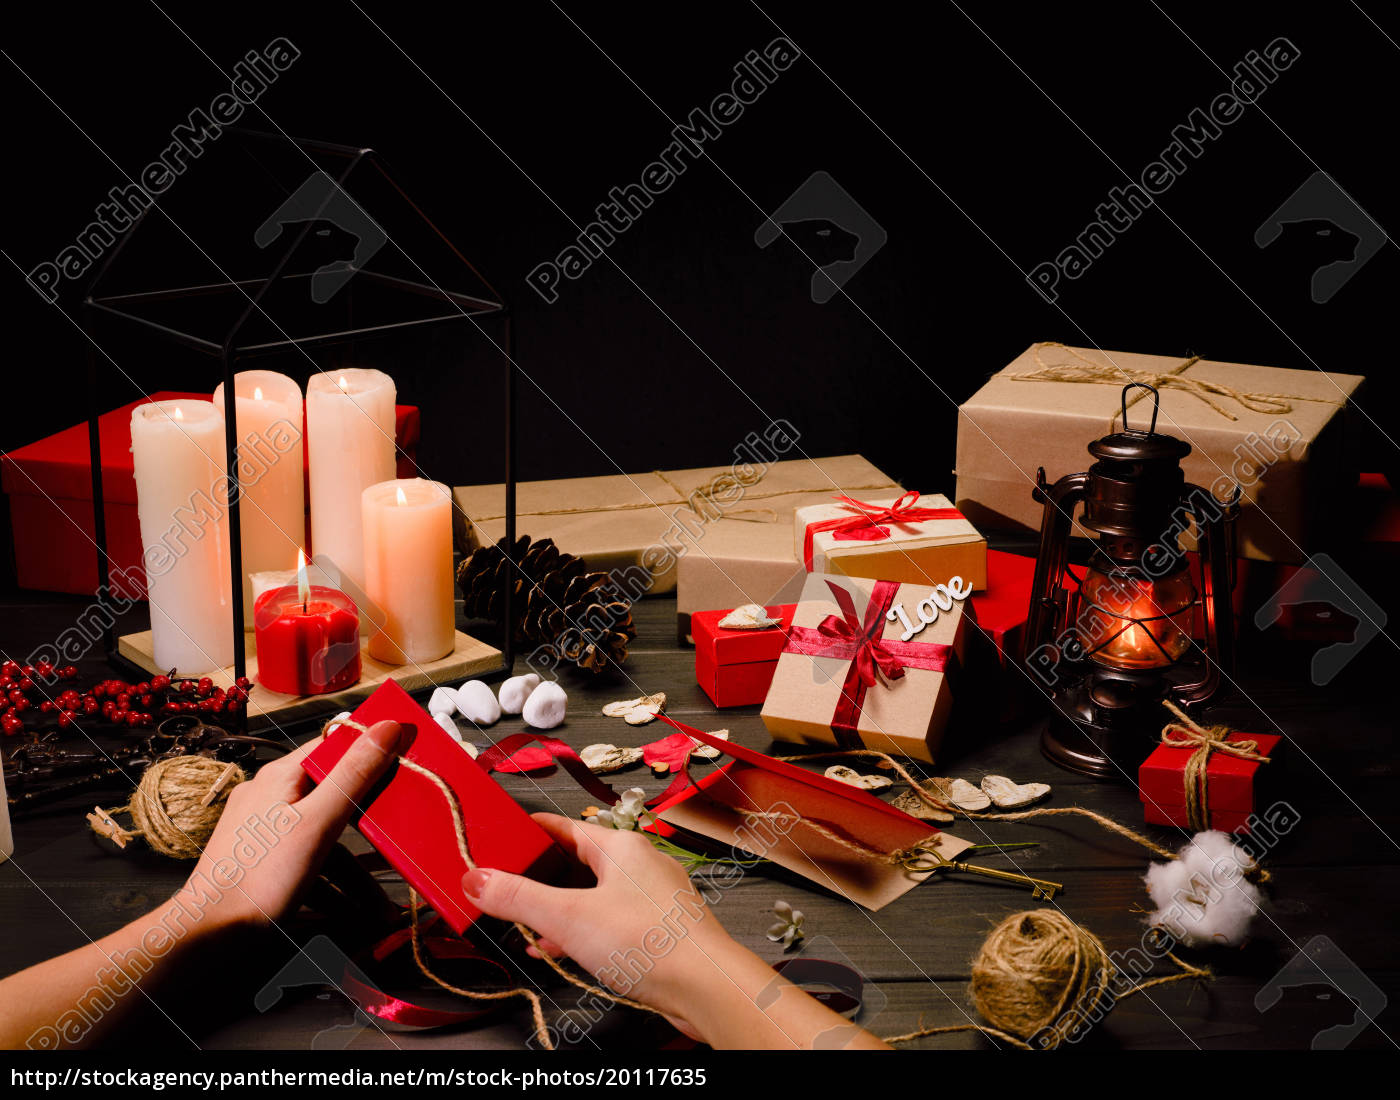 female, hands, packing, gift - 20117635